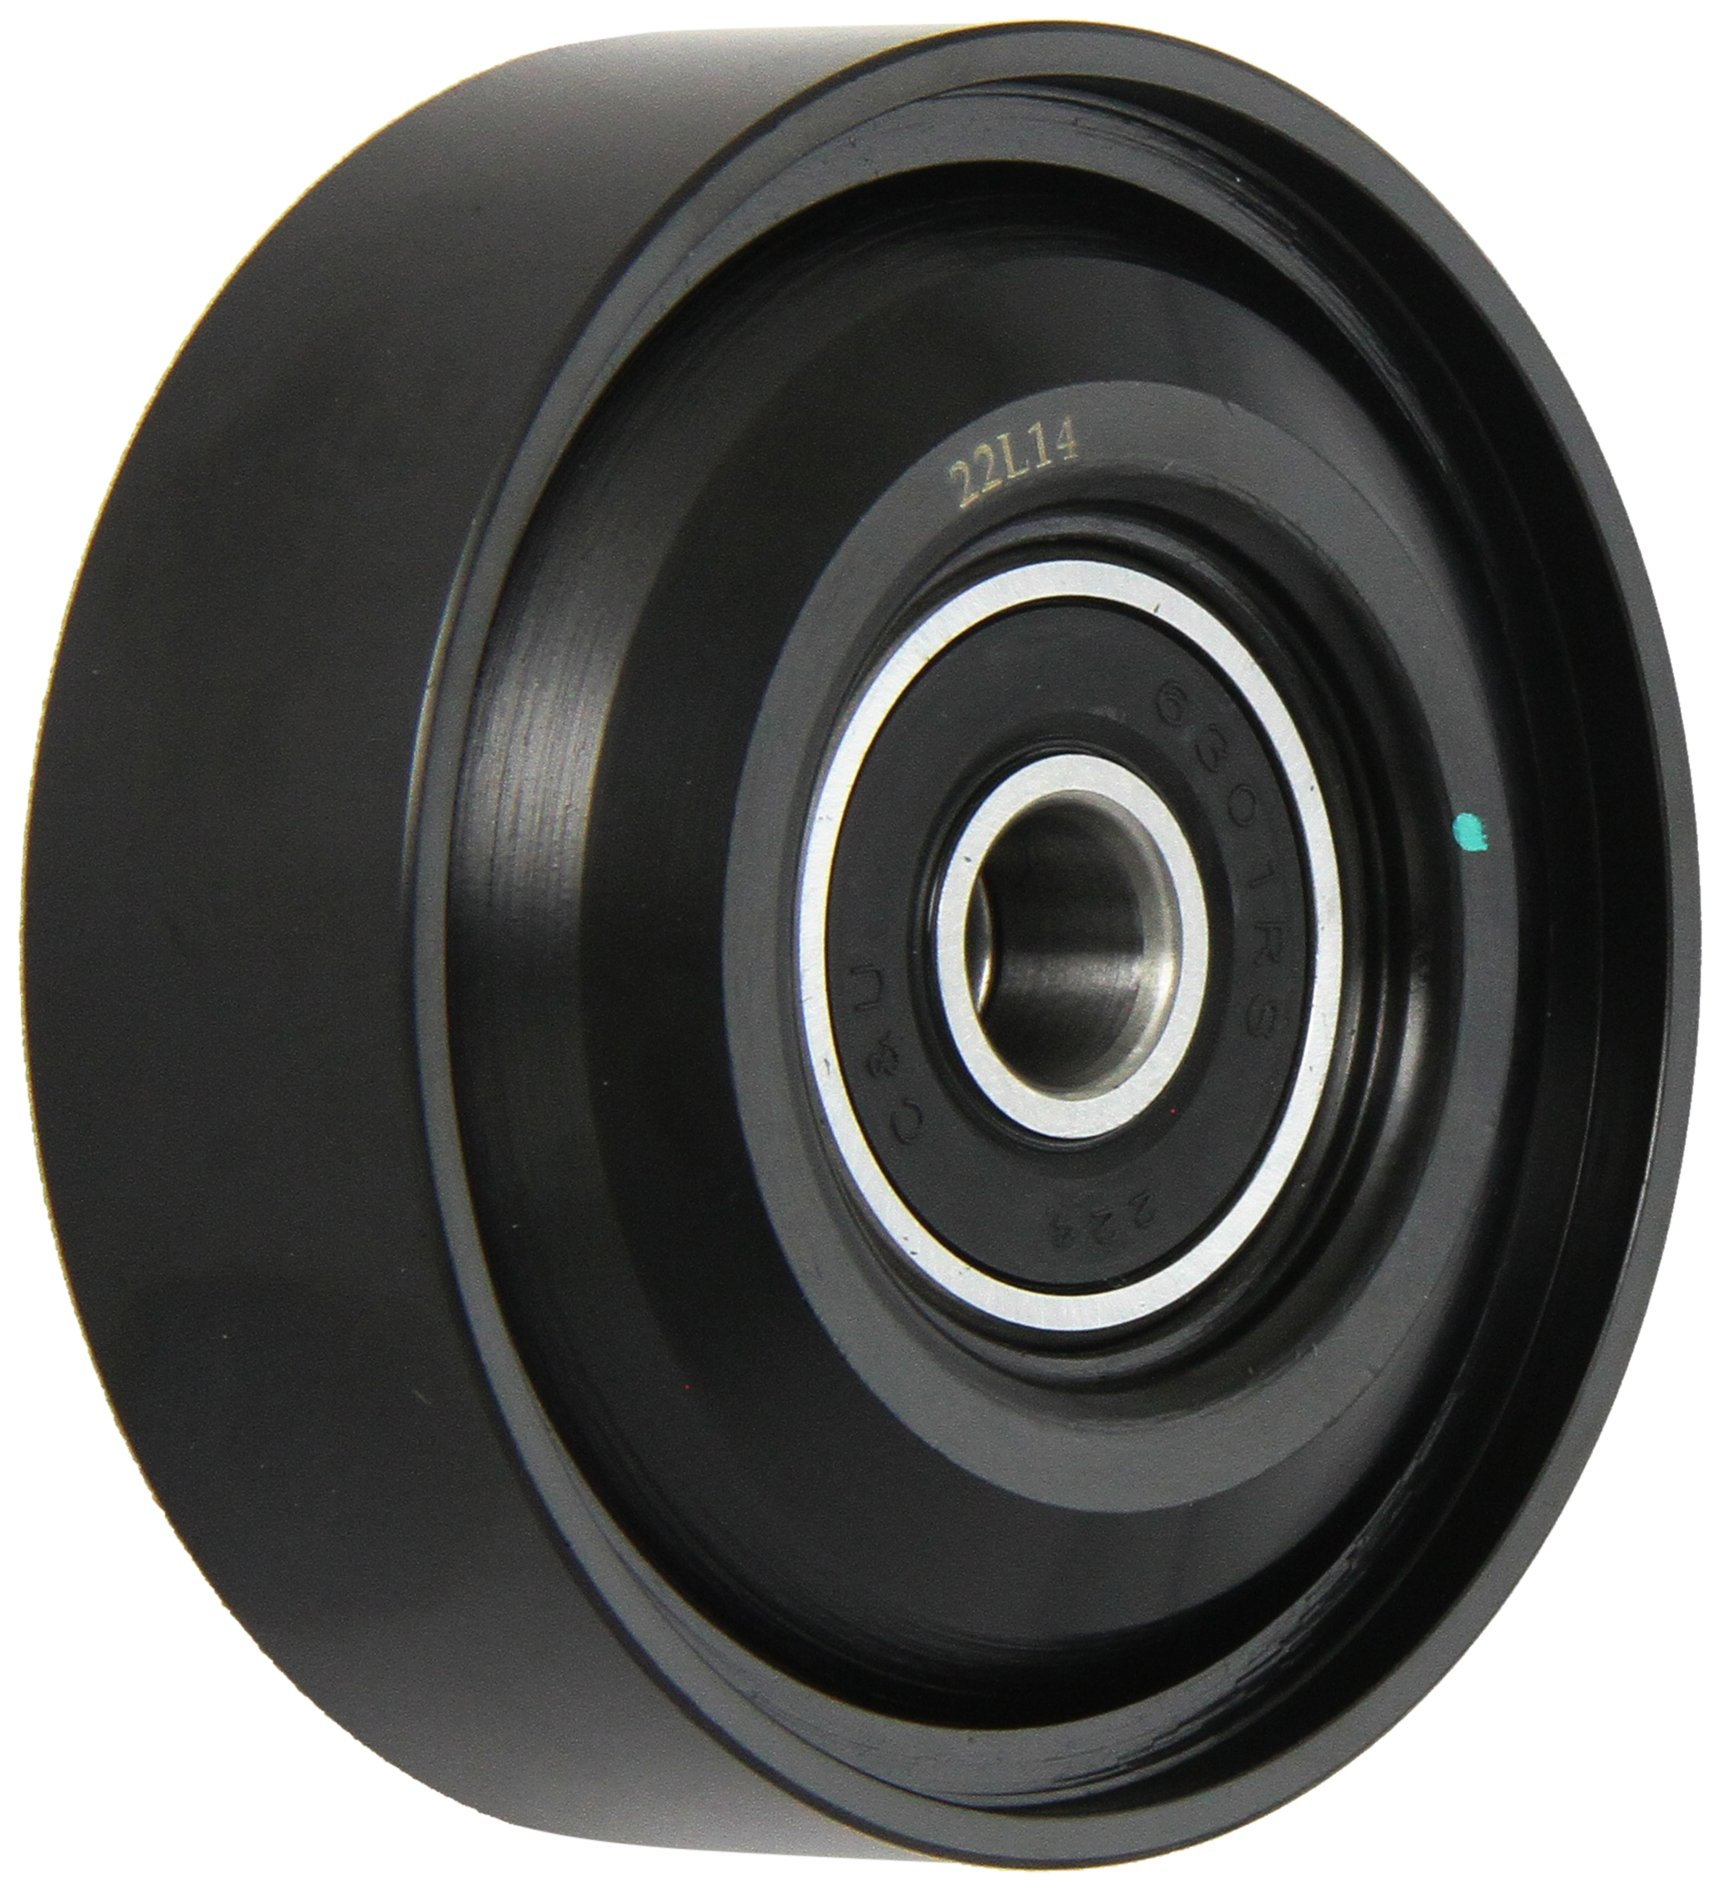 Dayco 89150 Idler Pulley